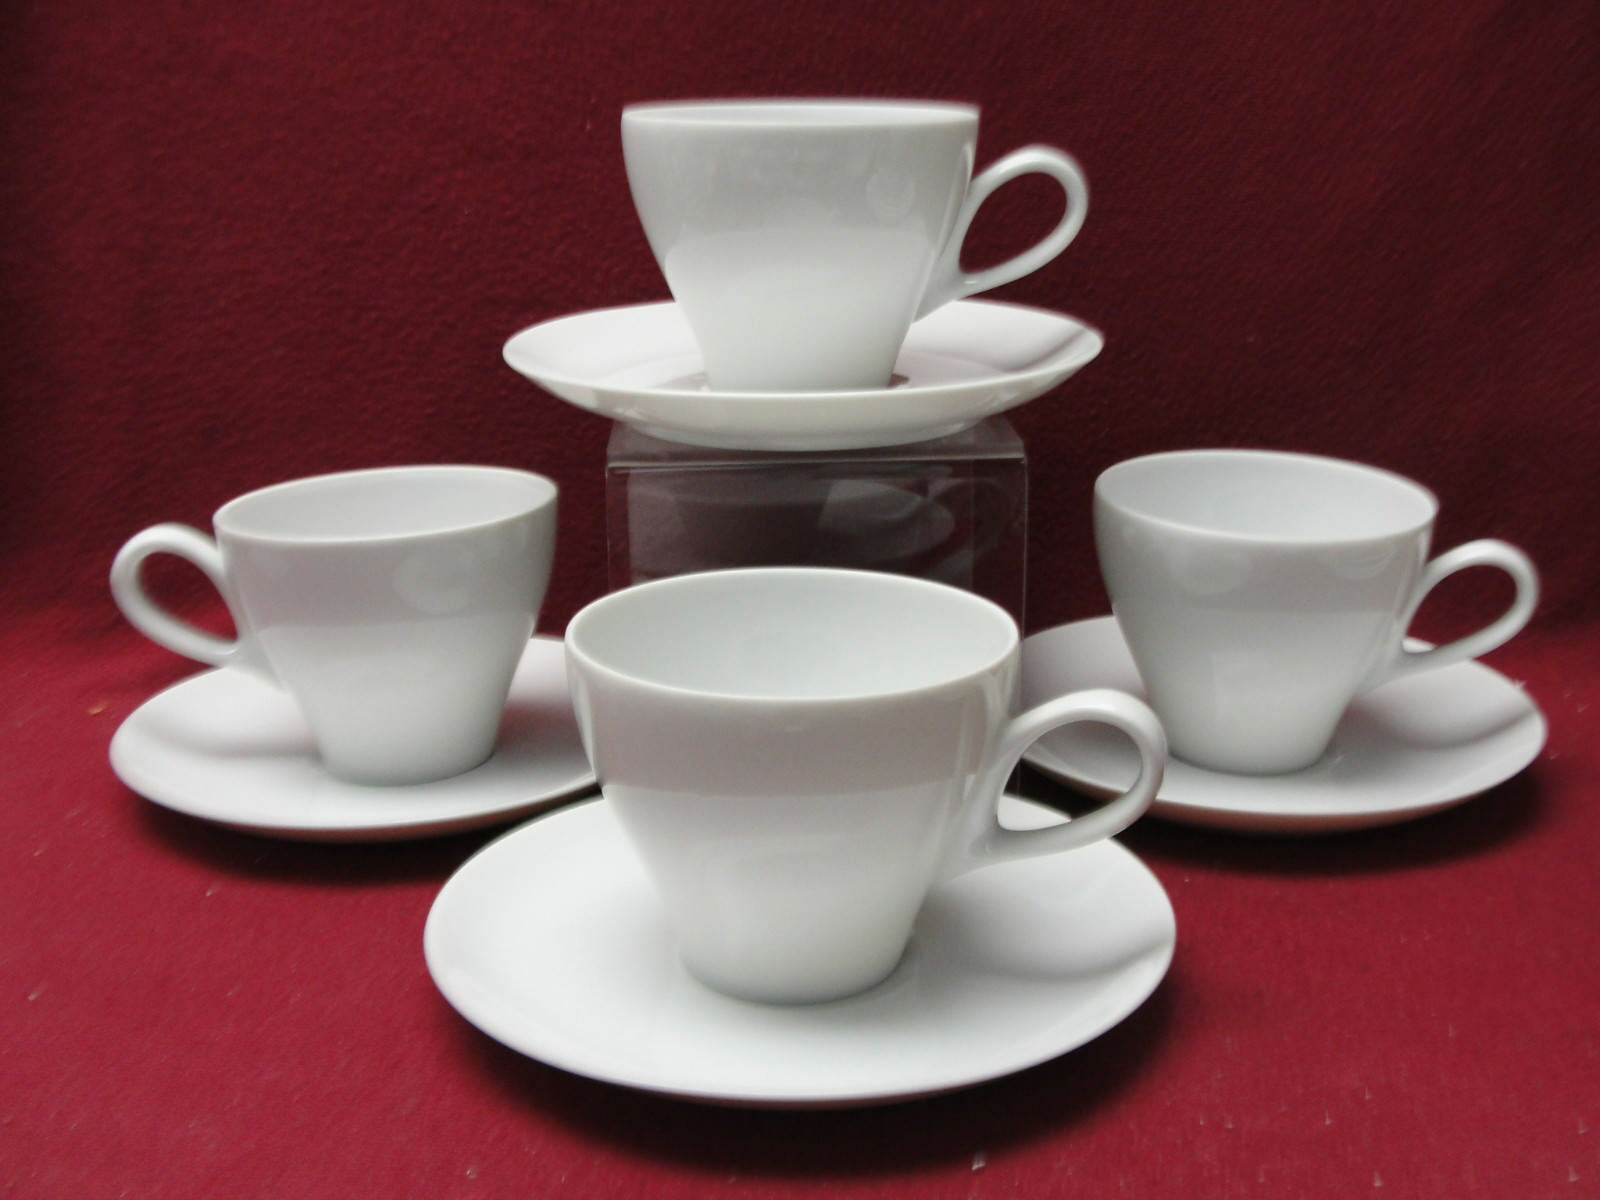 Primary image for Set of Four (4) MIKASA China - SOPHISTICATE (all white) - CUP & SAUCER SETS